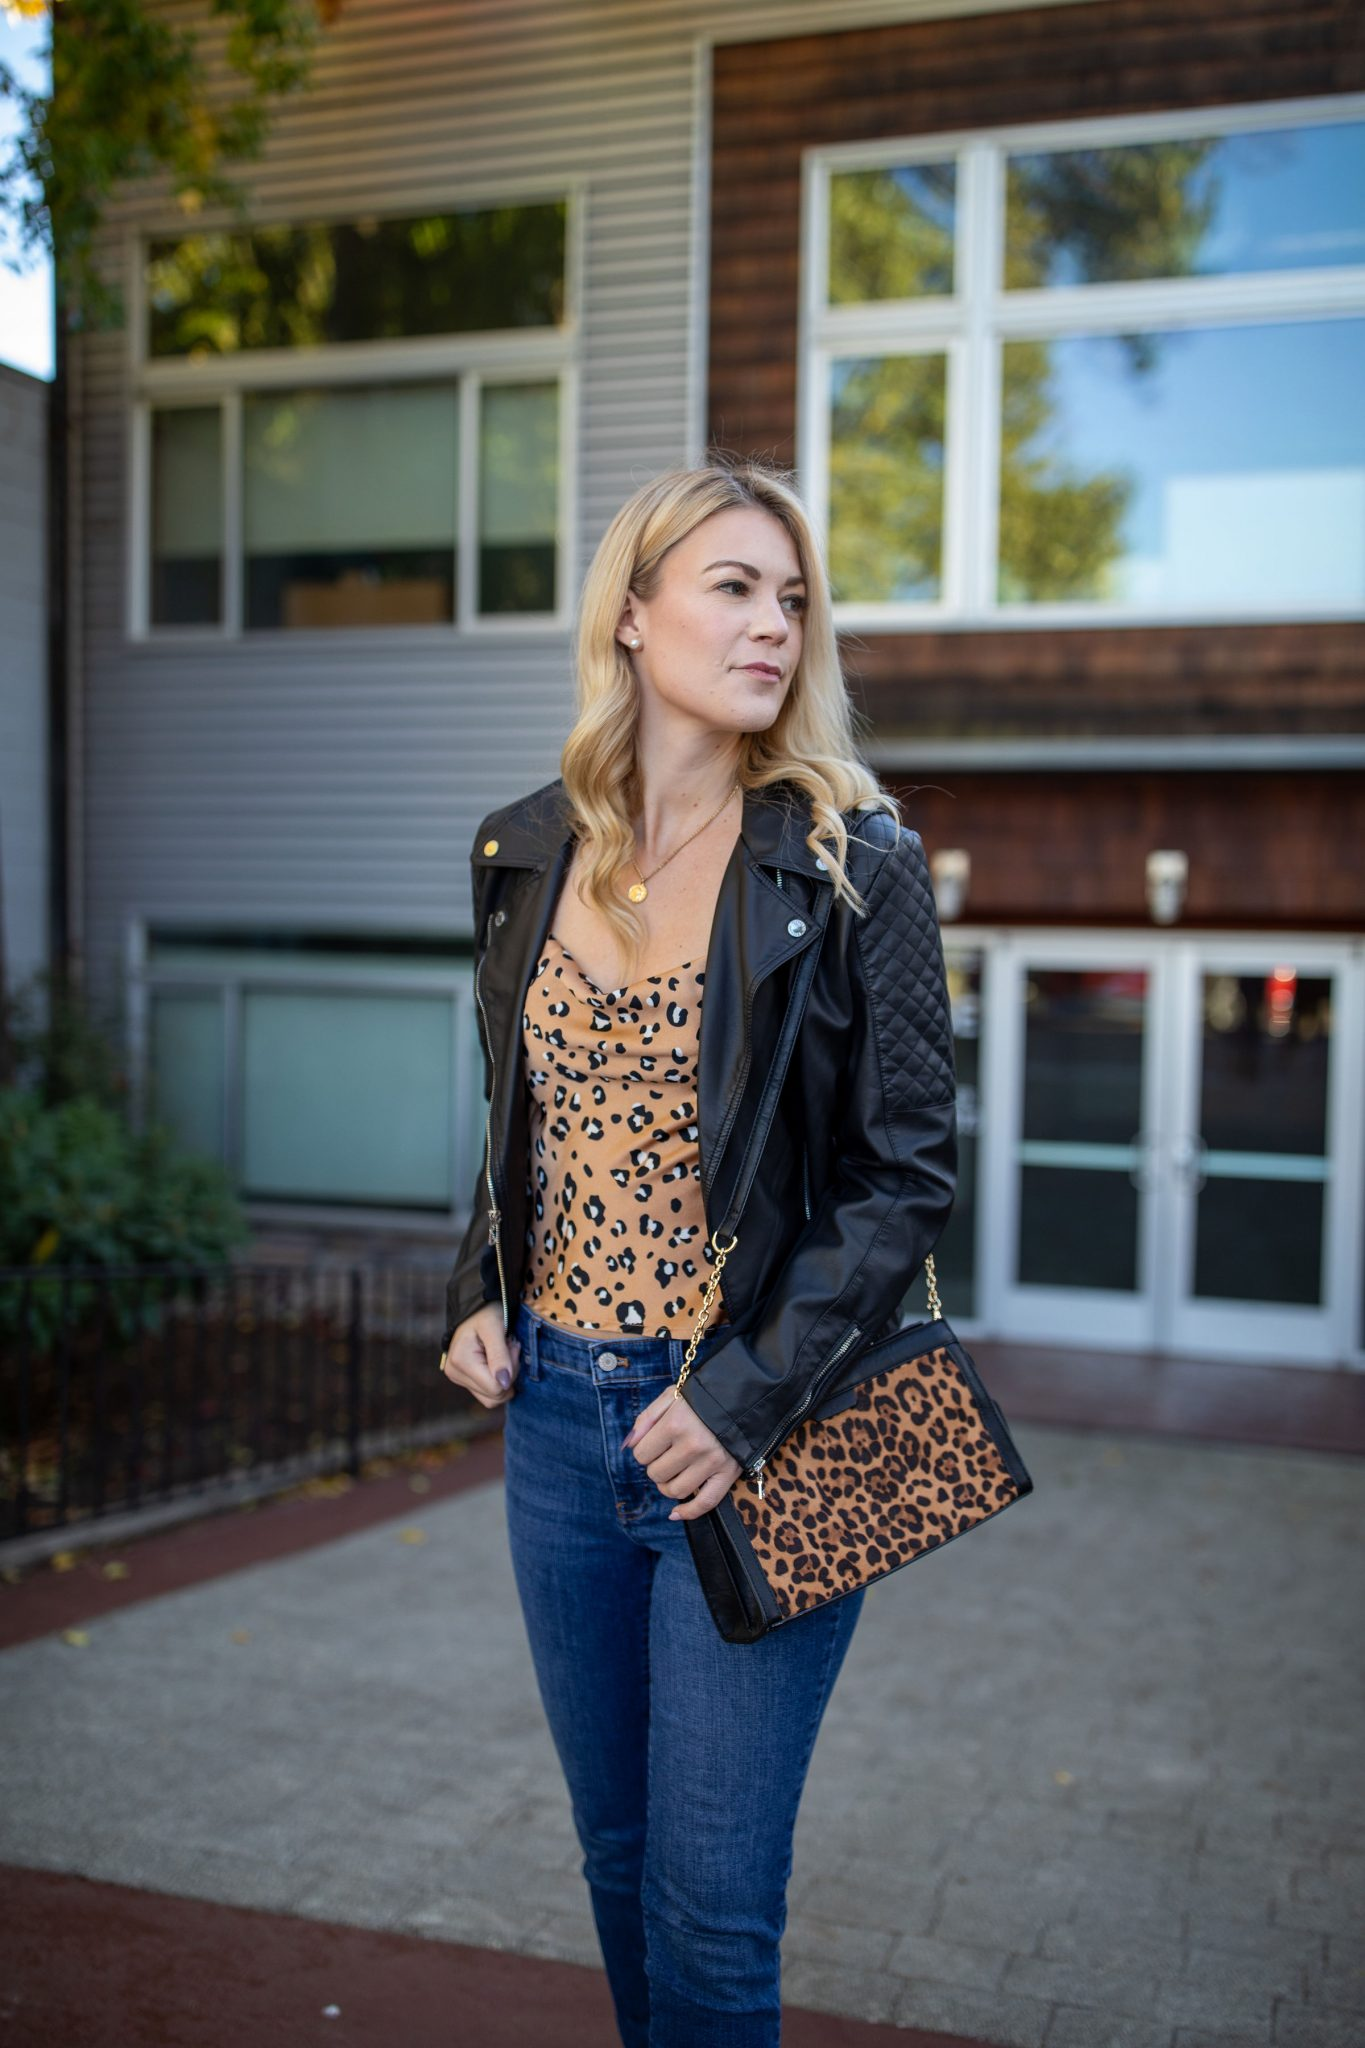 Leather Jacket by popular Seattle tall fashion blog, Whit Wanders: image of a woman wearing a Express Leather Jacket, Nastygal cami, Madewell jeans, Ralph Lauren Black Booties, and holding a Sole Society Purse.